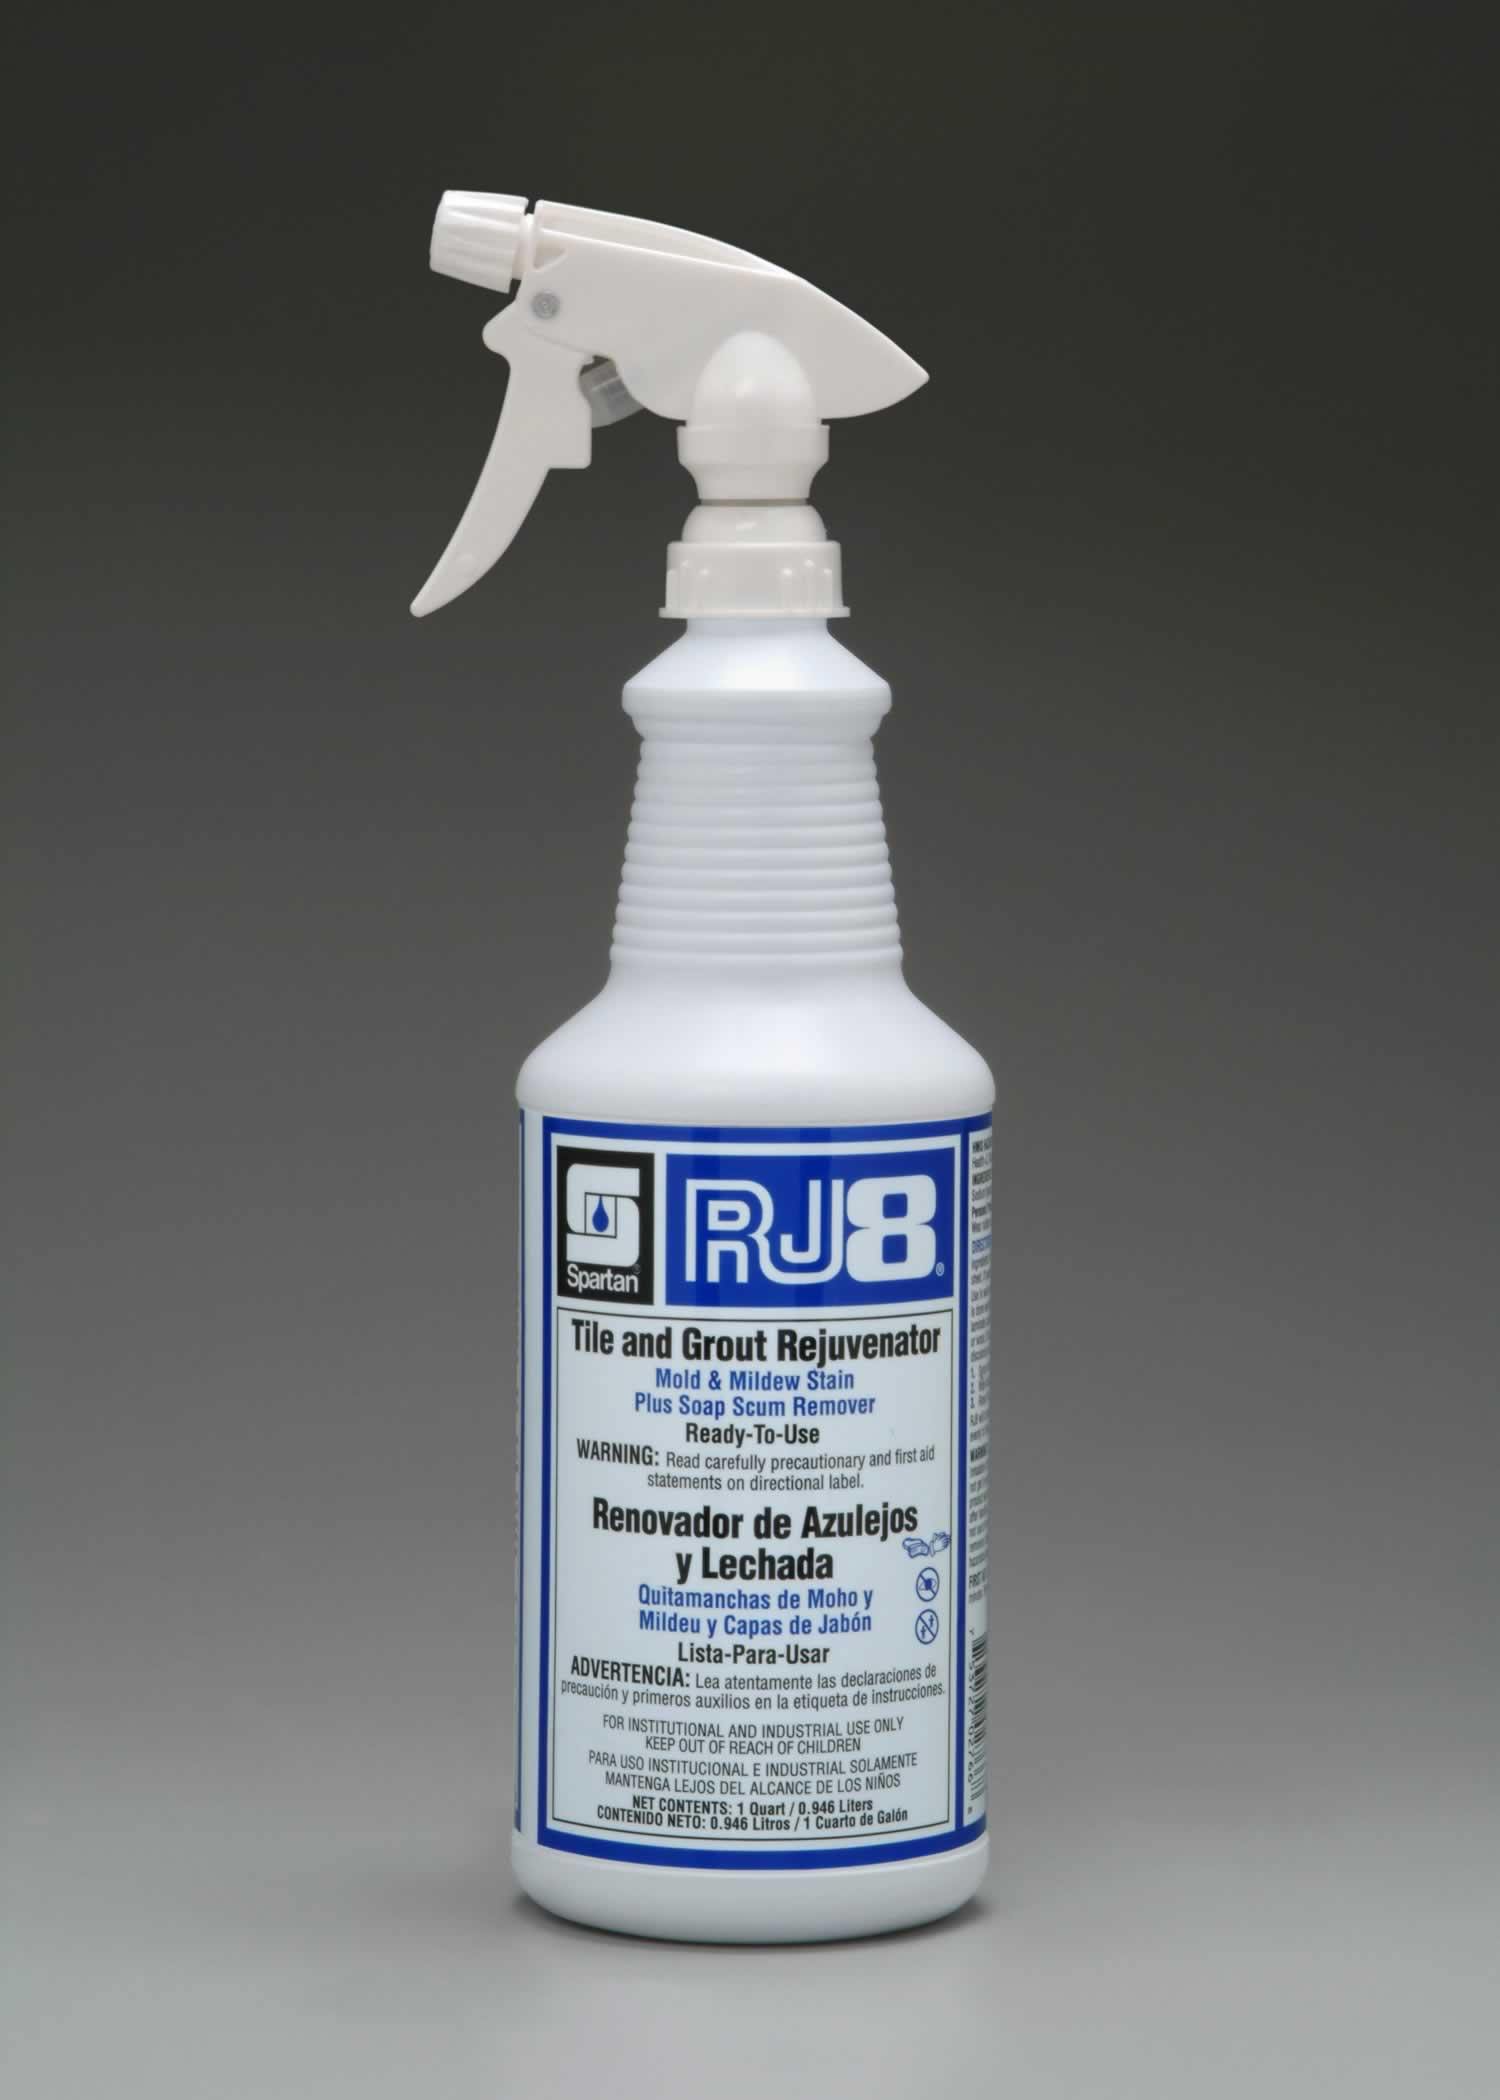 RJ8 tile and grout rejuvenator